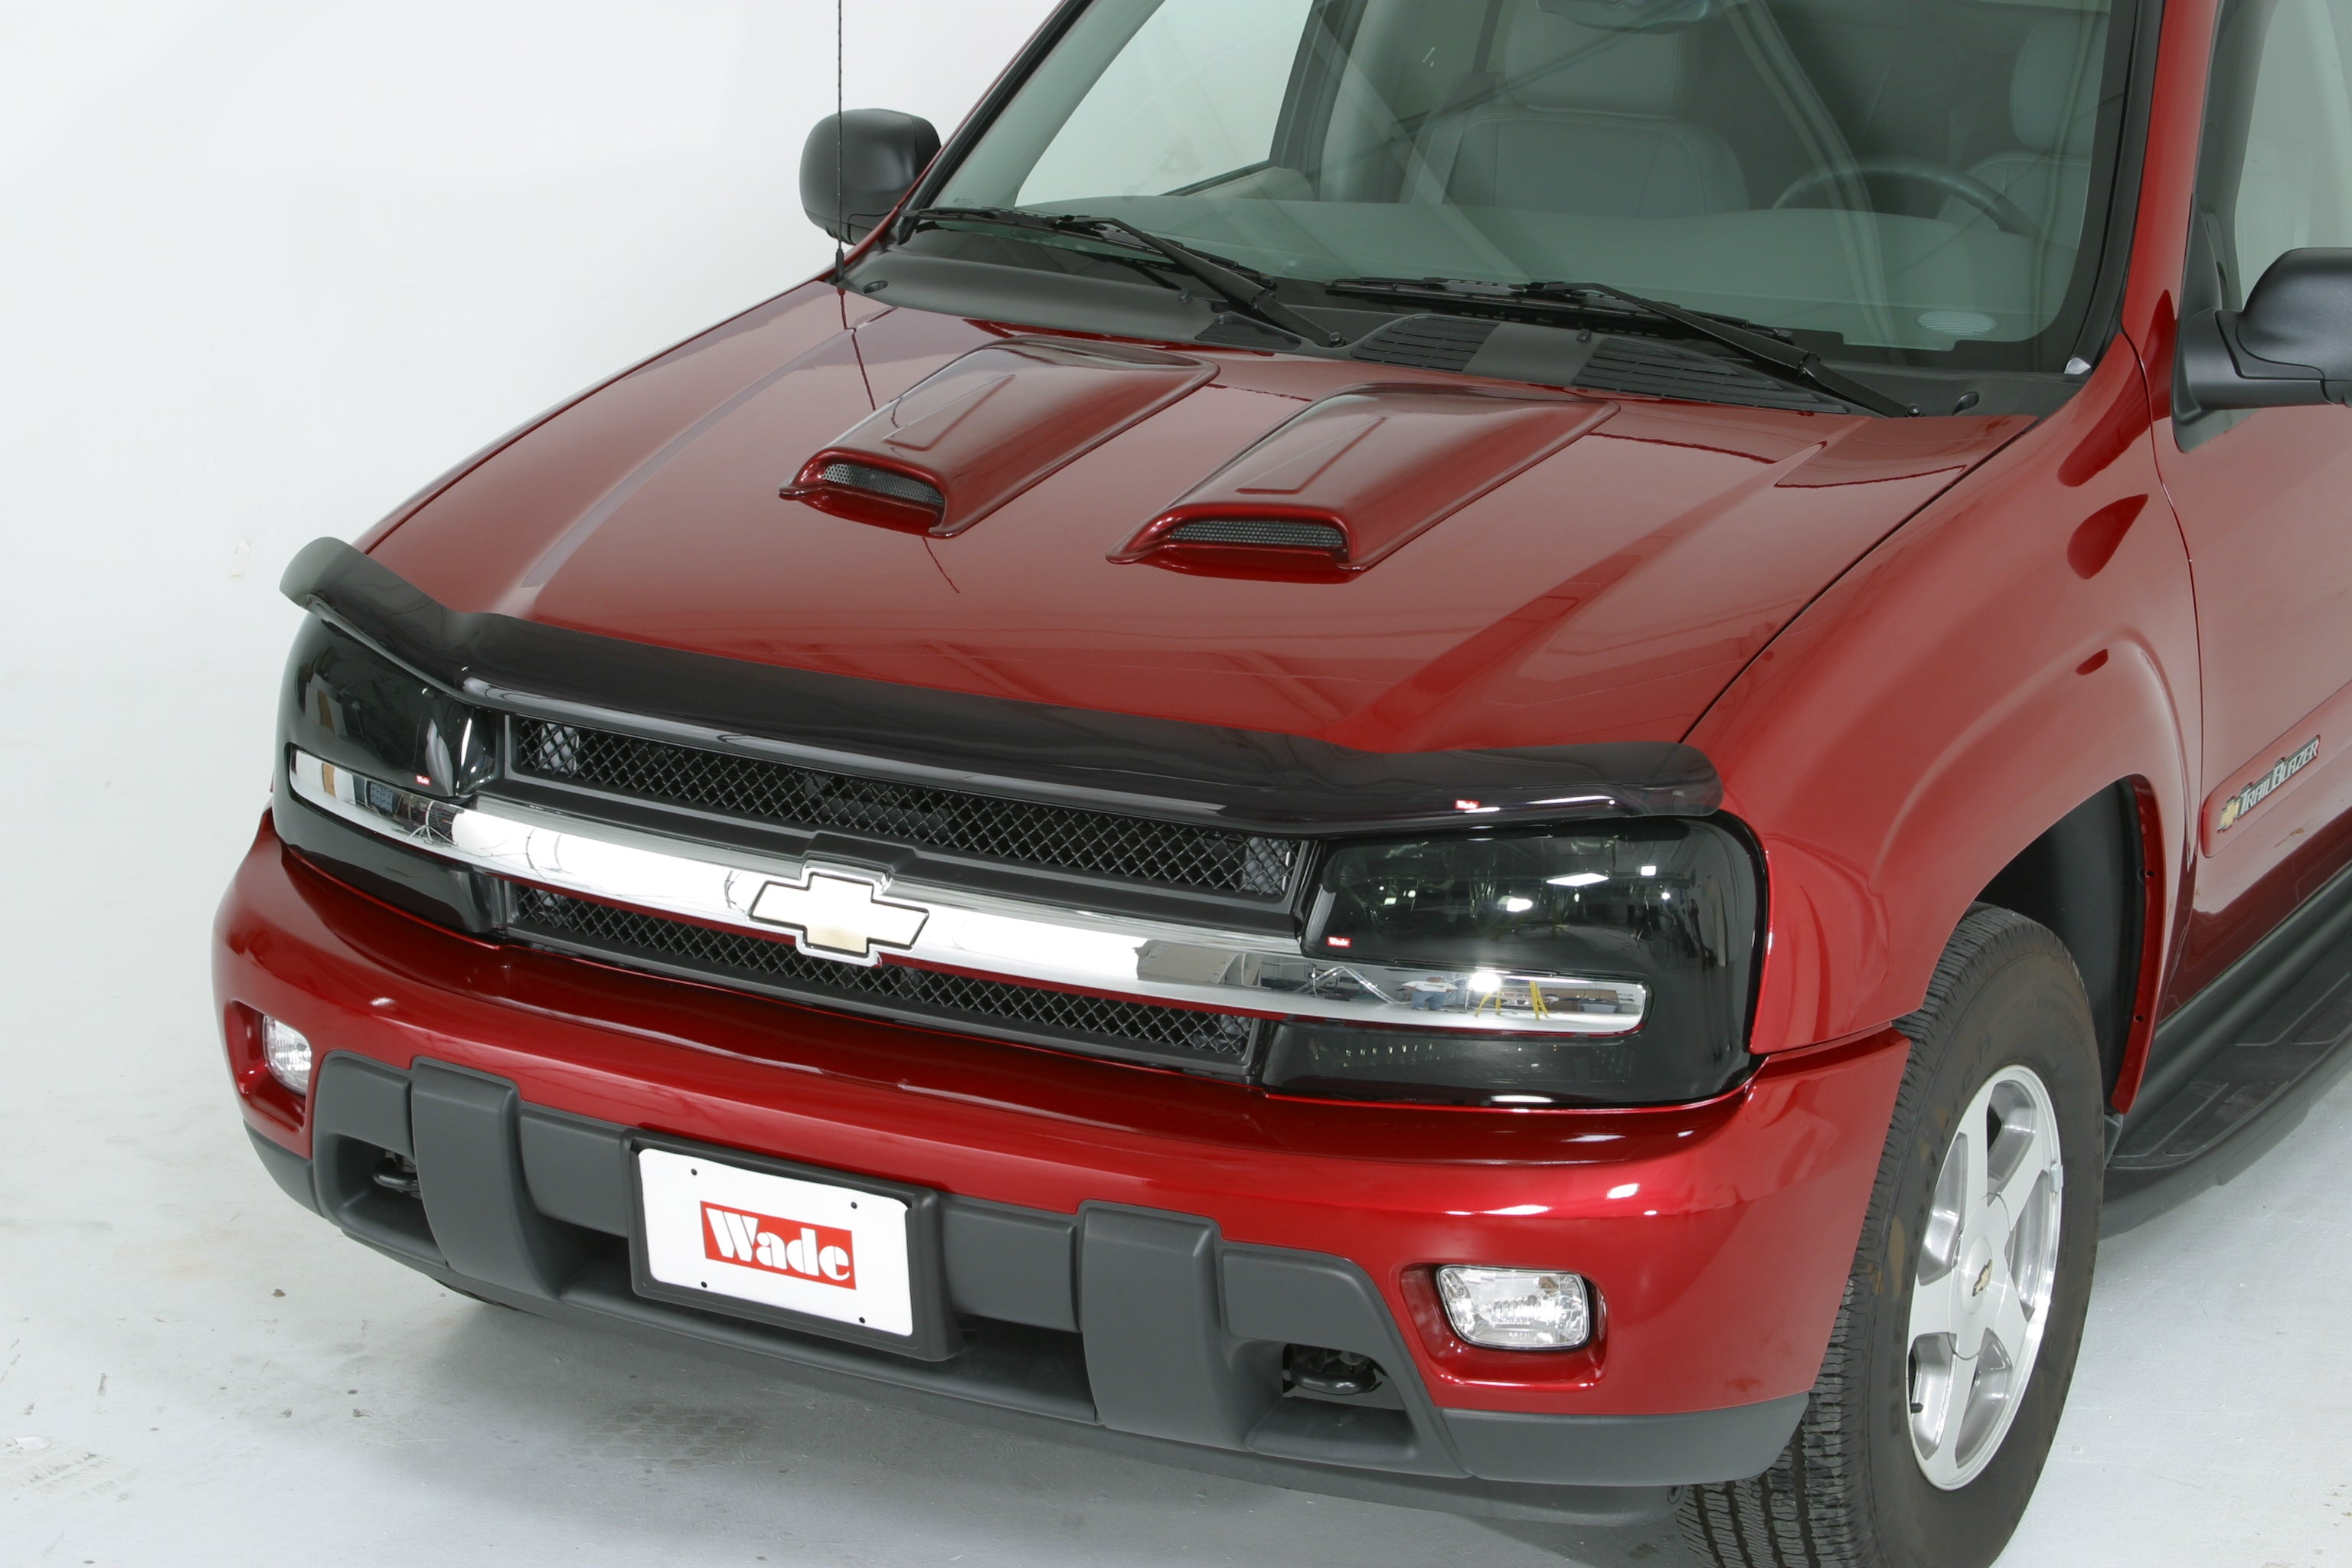 1994 Nissan Pickup 4WD (recessed light) Head Light Covers